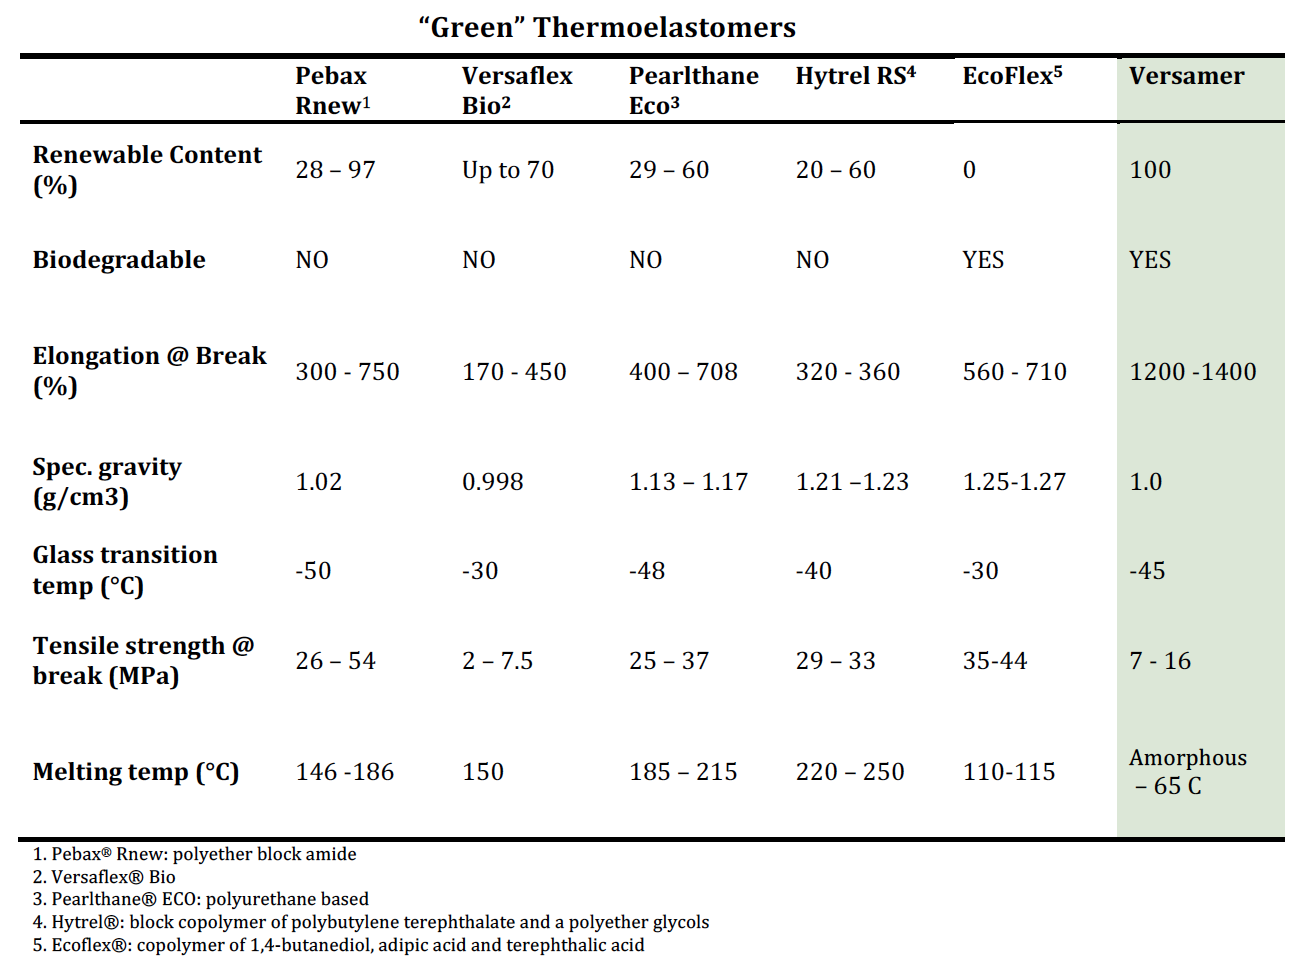 green thermoelastomers table